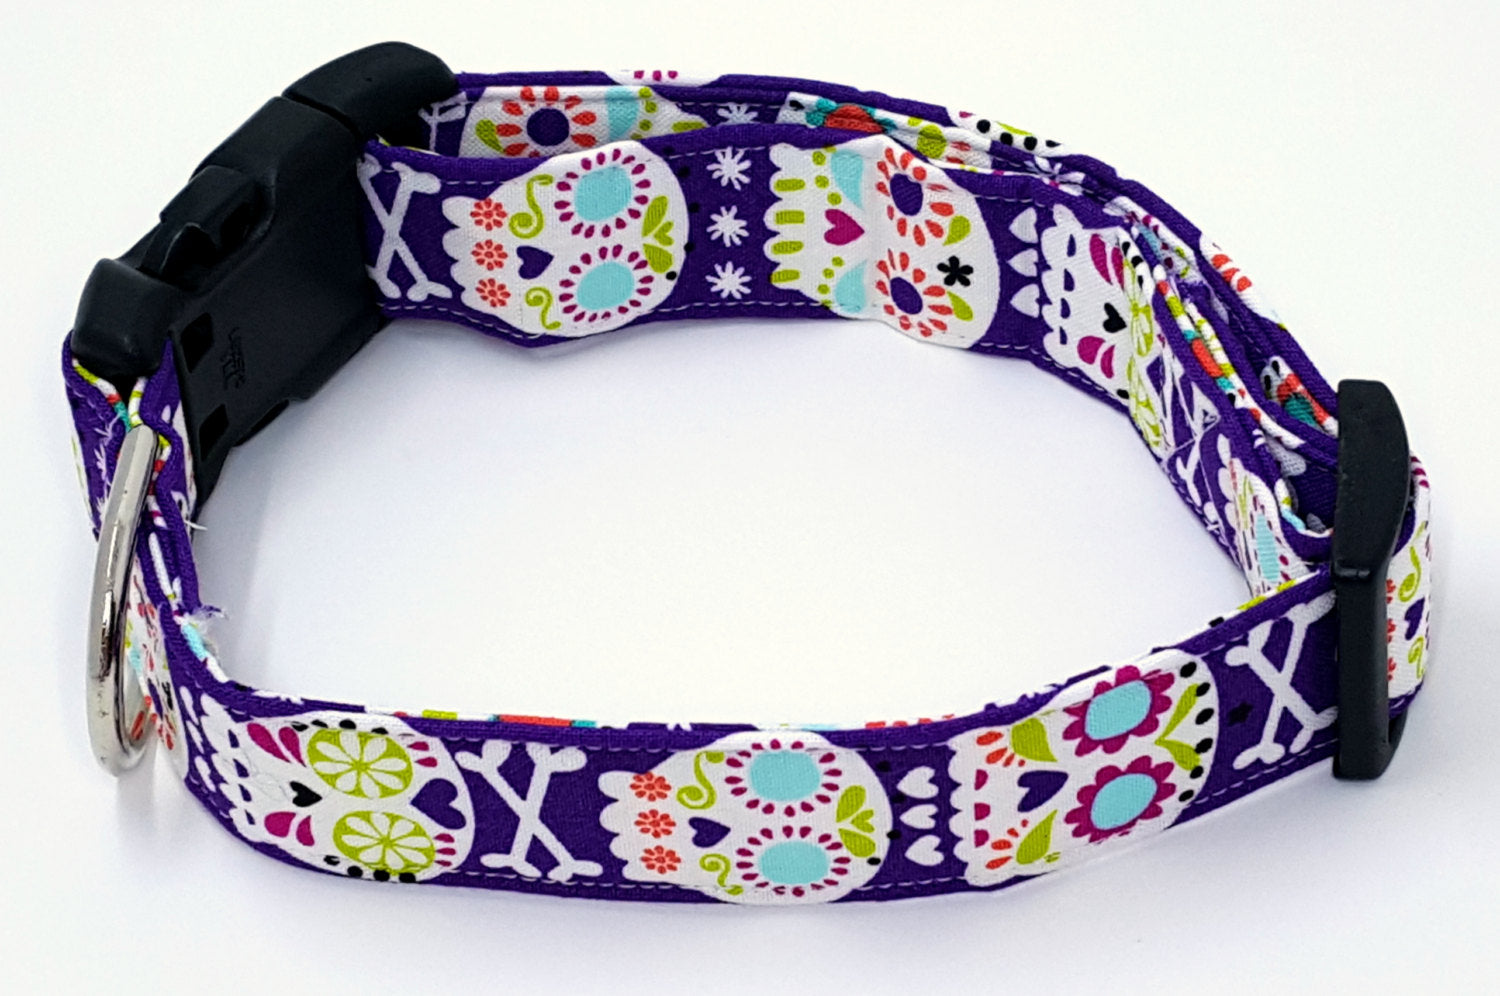 Giant Bone Head Dia De Los Muertos Skulls and Crossbones Purple Halloween Dog Collar